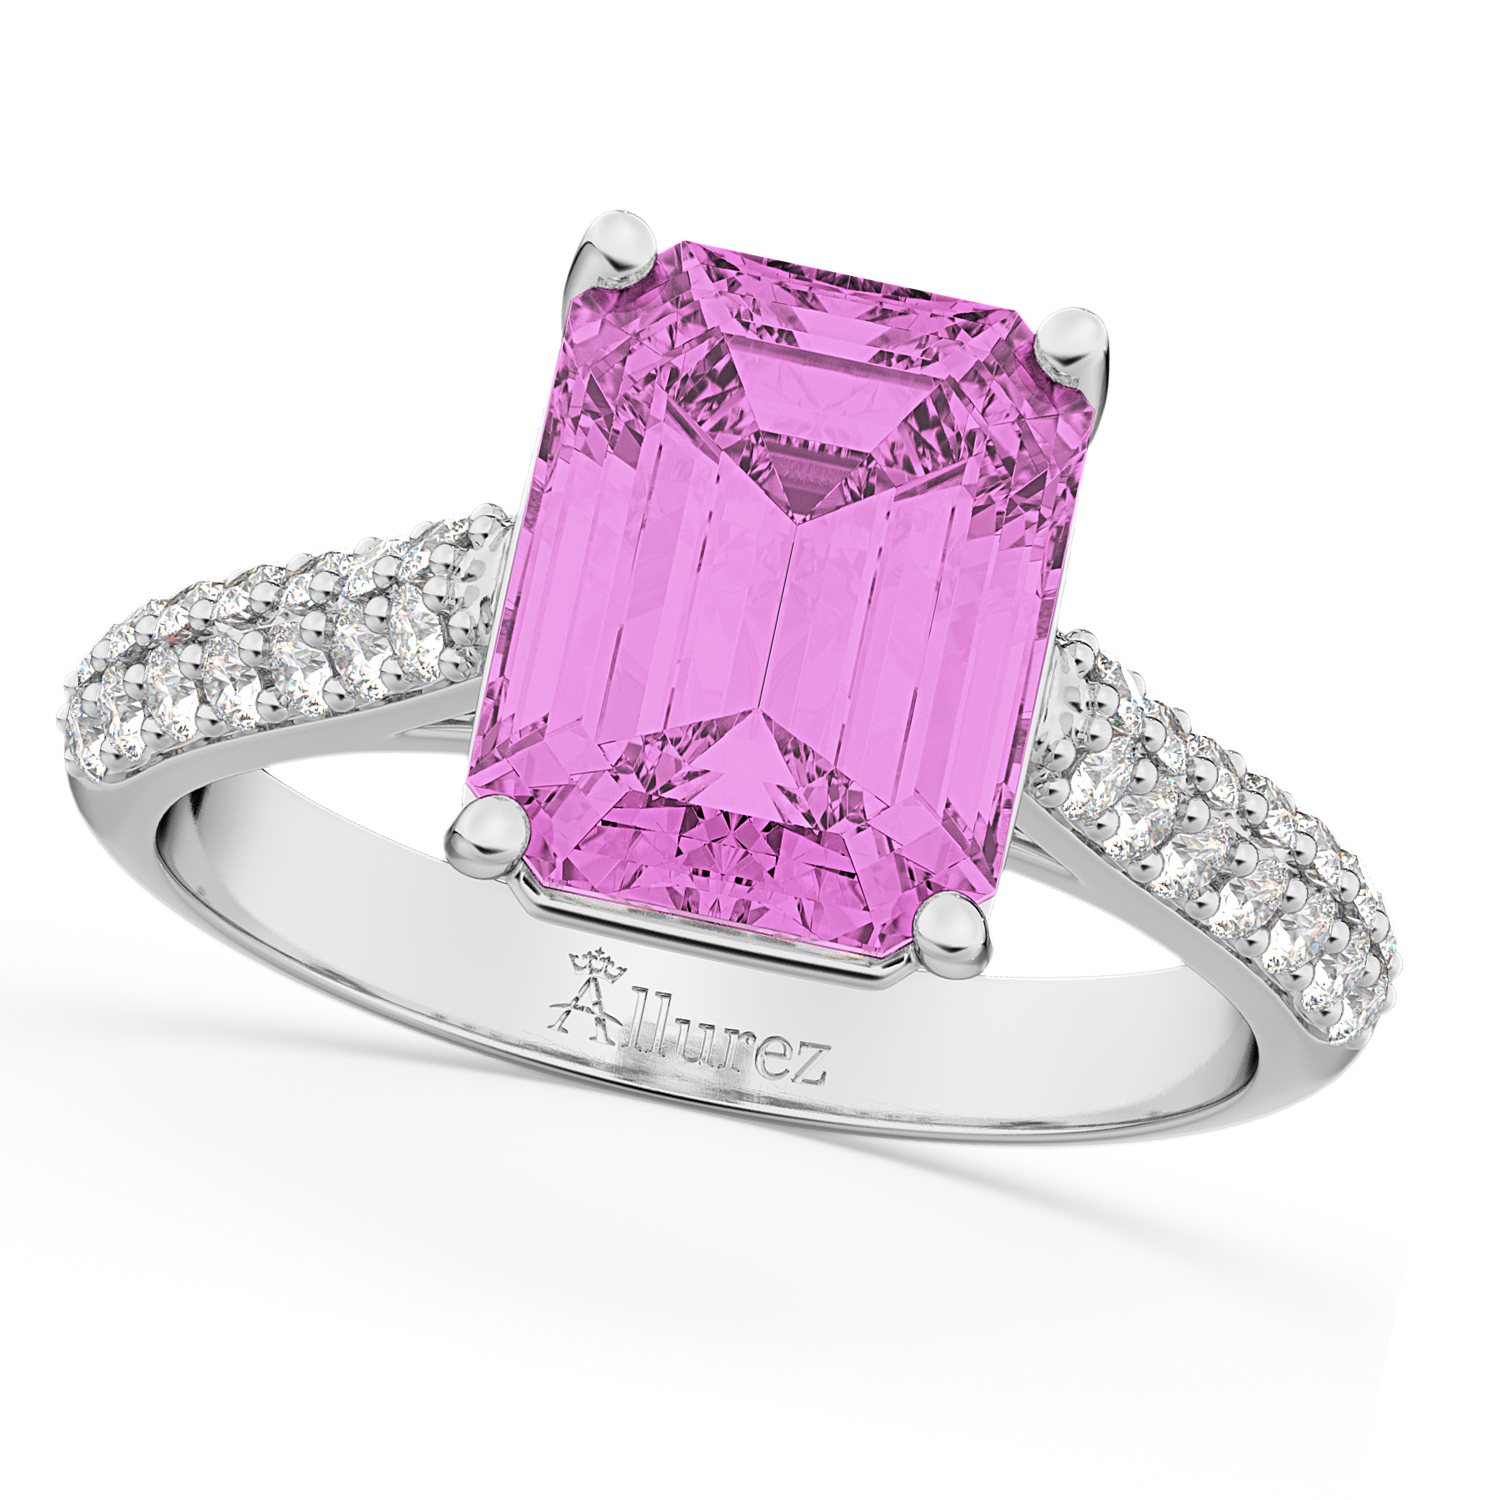 Emerald-Cut Pink Sapphire & Diamond Ring 18k White Gold 5.54ct - AD1934